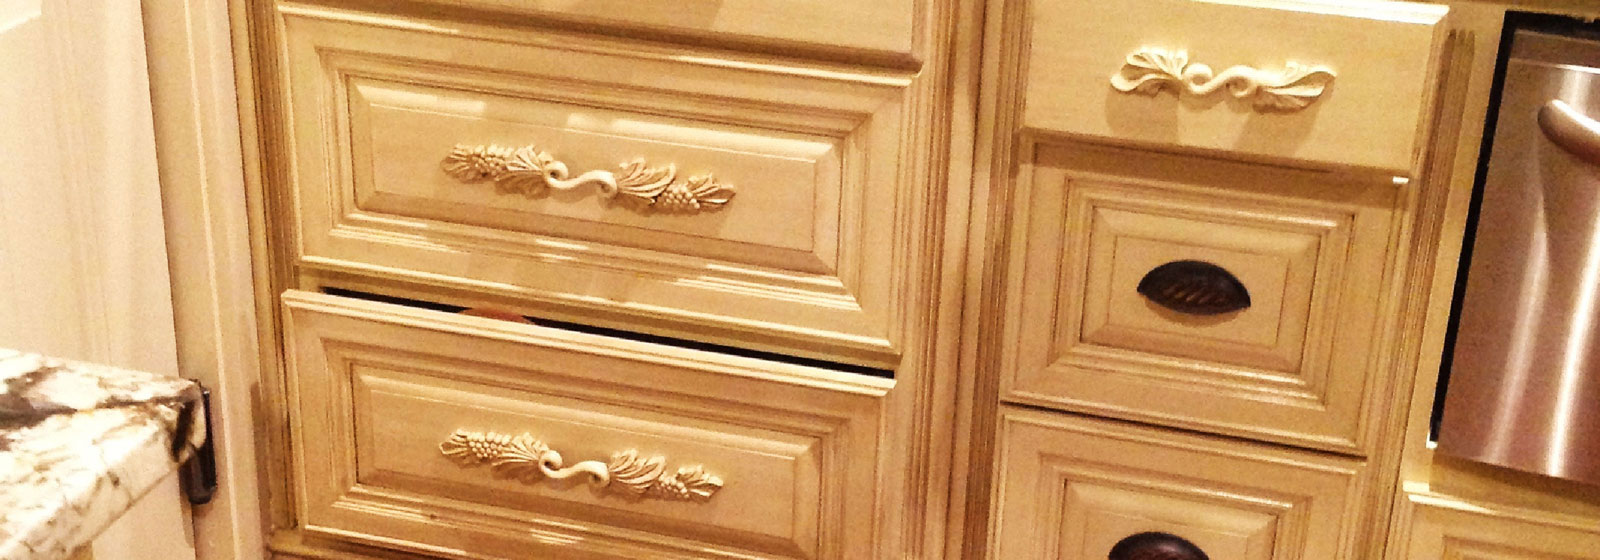 Cabinet & Furniture Accessories